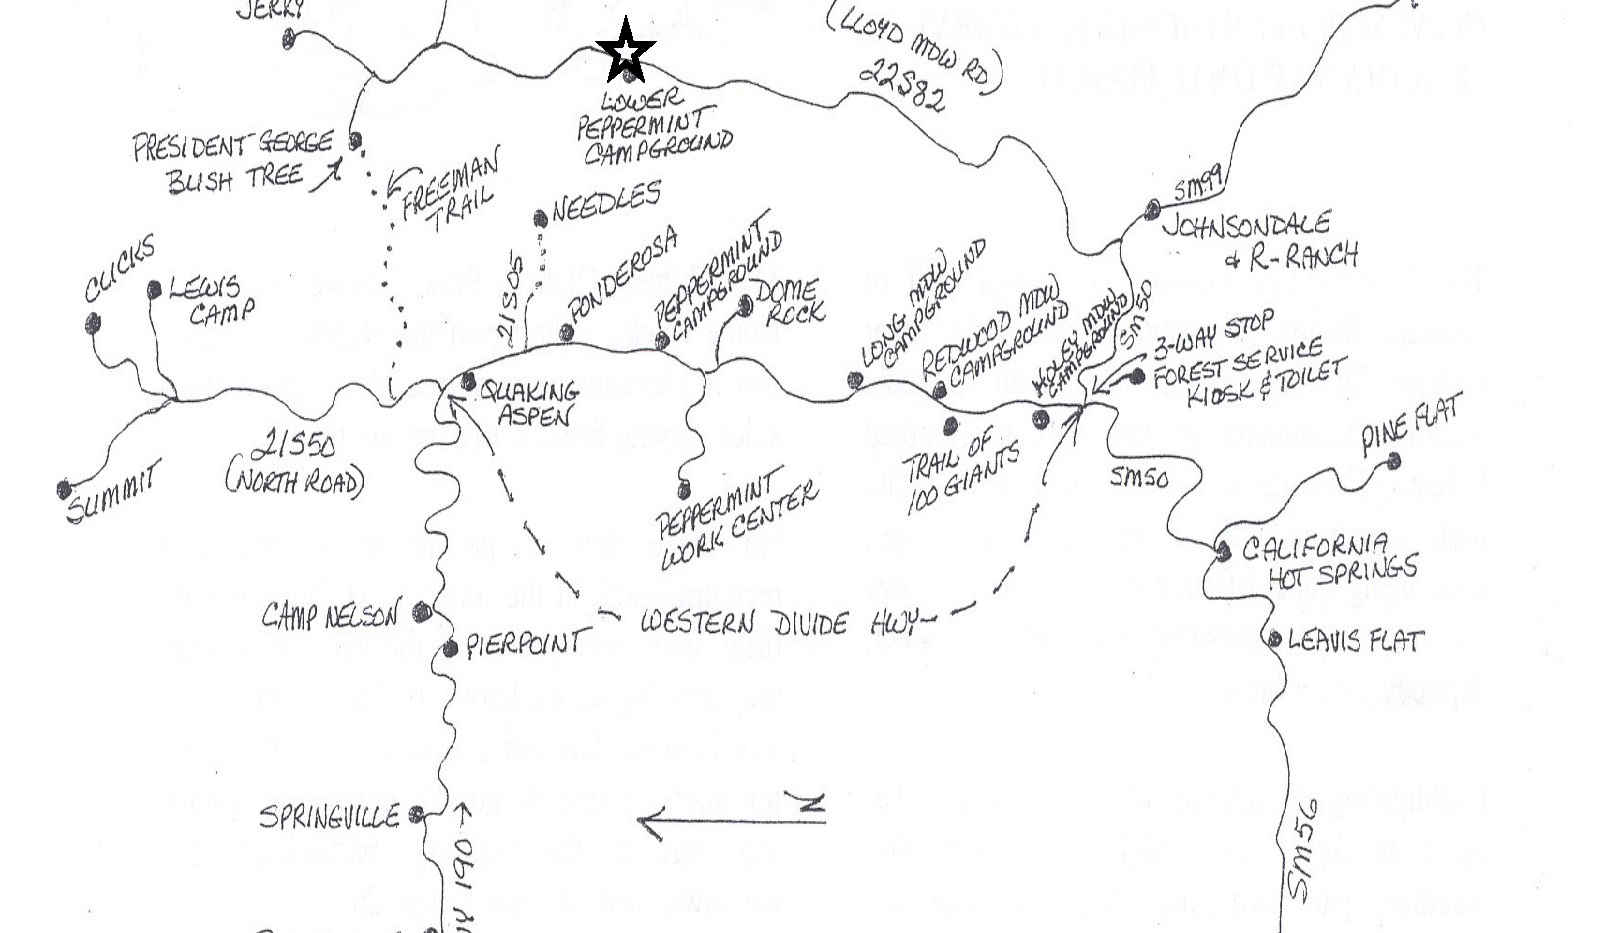 Peppermint Campground and Area Map